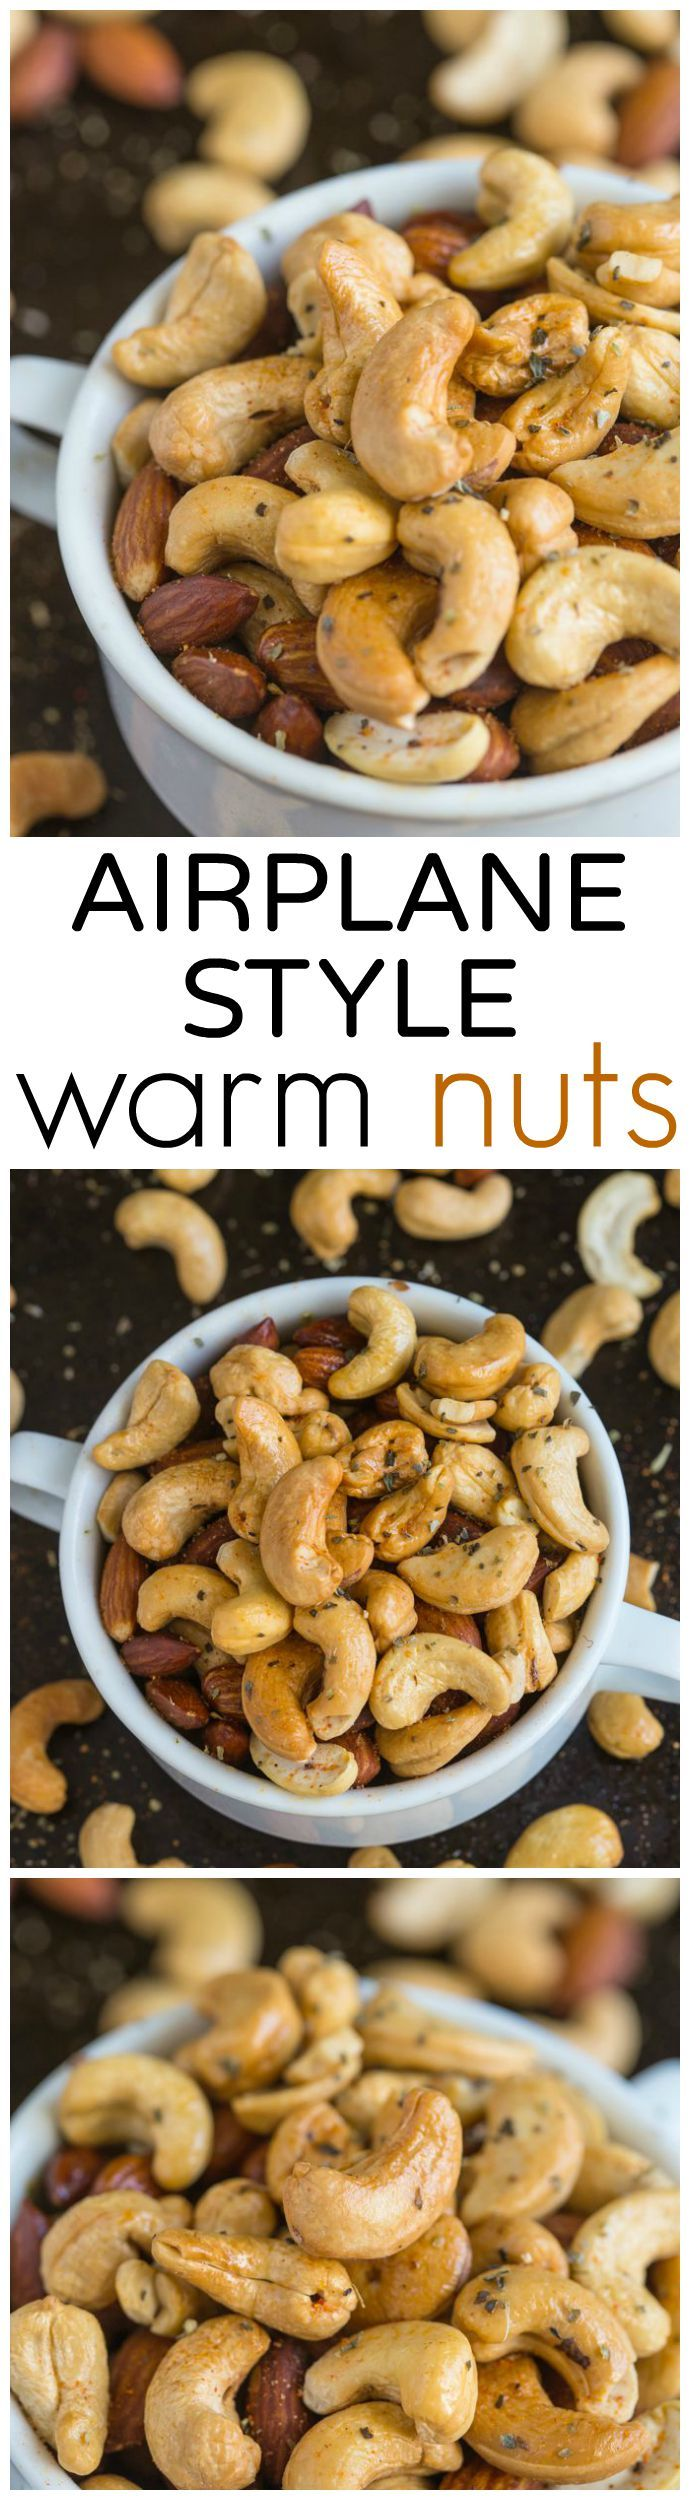 Airplane Style Warm Nuts- Tested out three ways (stovetop, slow cooker and oven roasted!) these nuts are a delicious appetiser or snack chock full of spices!